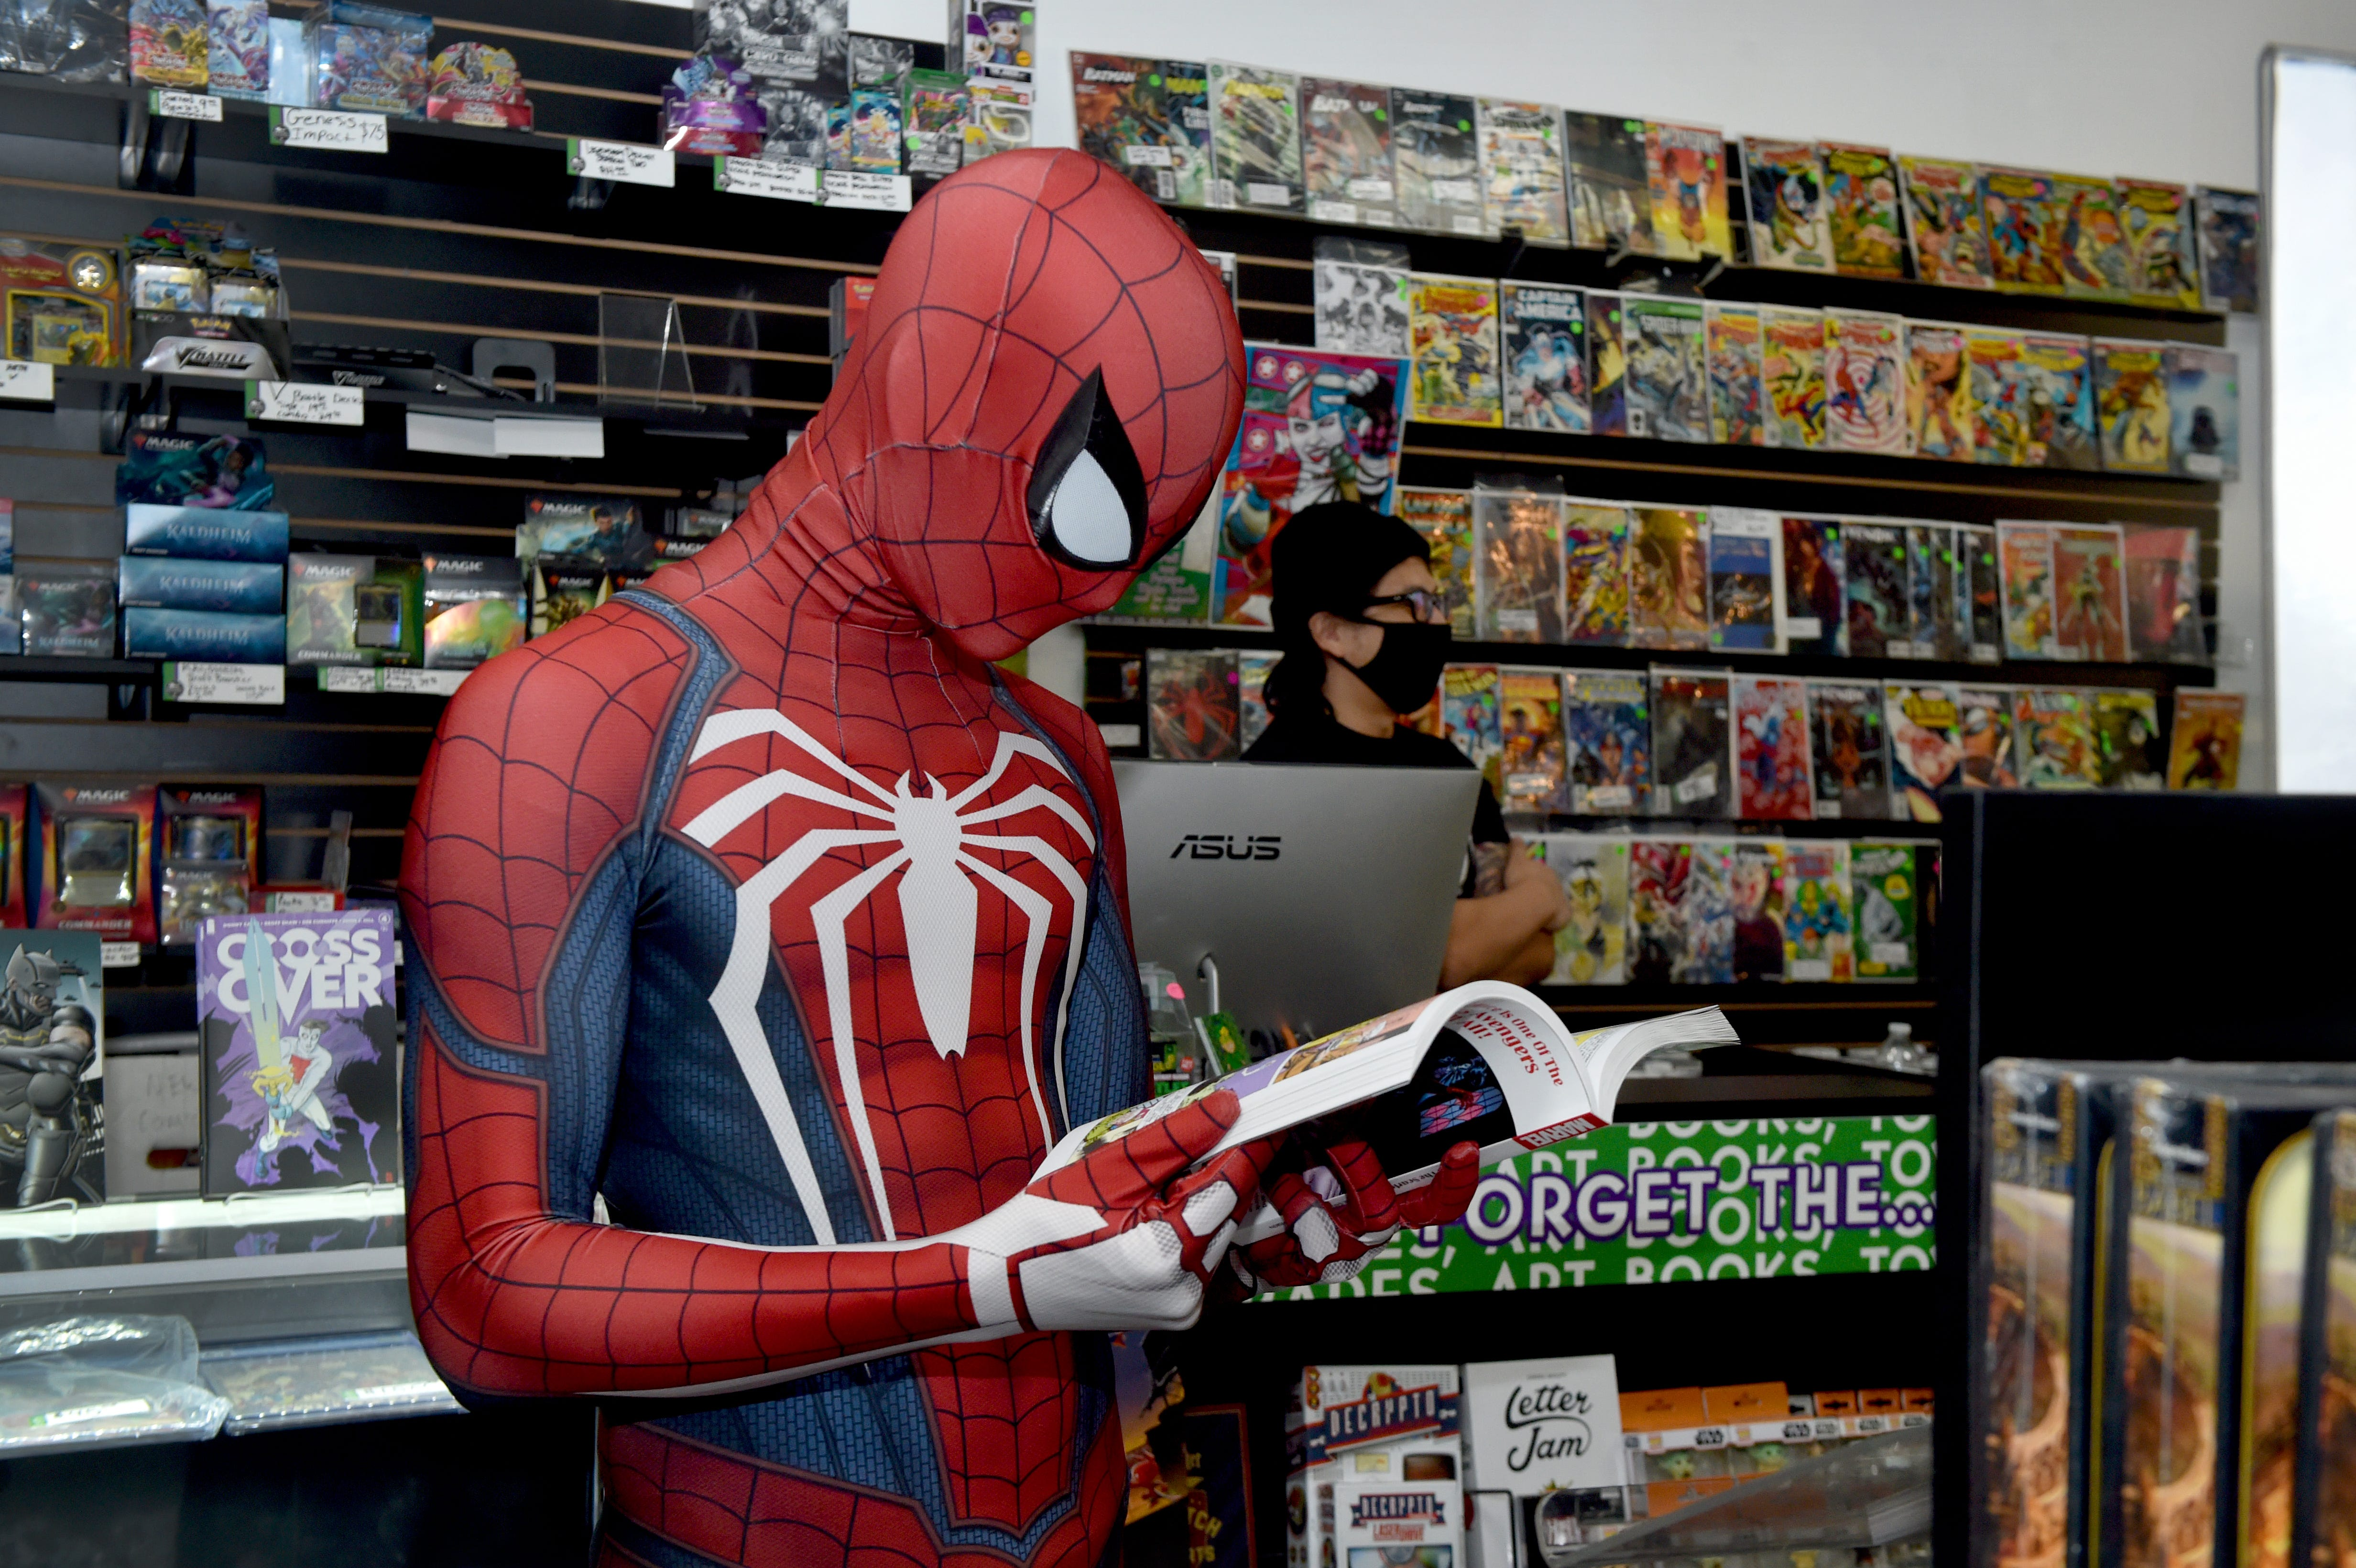 Aaron Riven, of Los Angeles, dressed as Spiderman, browses through a graphic novel during a visit to Arsenal Comics & Games in Newbury Park on Wednesday, Feb. 24, 2021. Store owner Timmy Heague, who owns a second shop in Ventura, said after struggling through a break-in at the Newbury Park store and the pandemic, 2020 was the business' best year ever in sales.